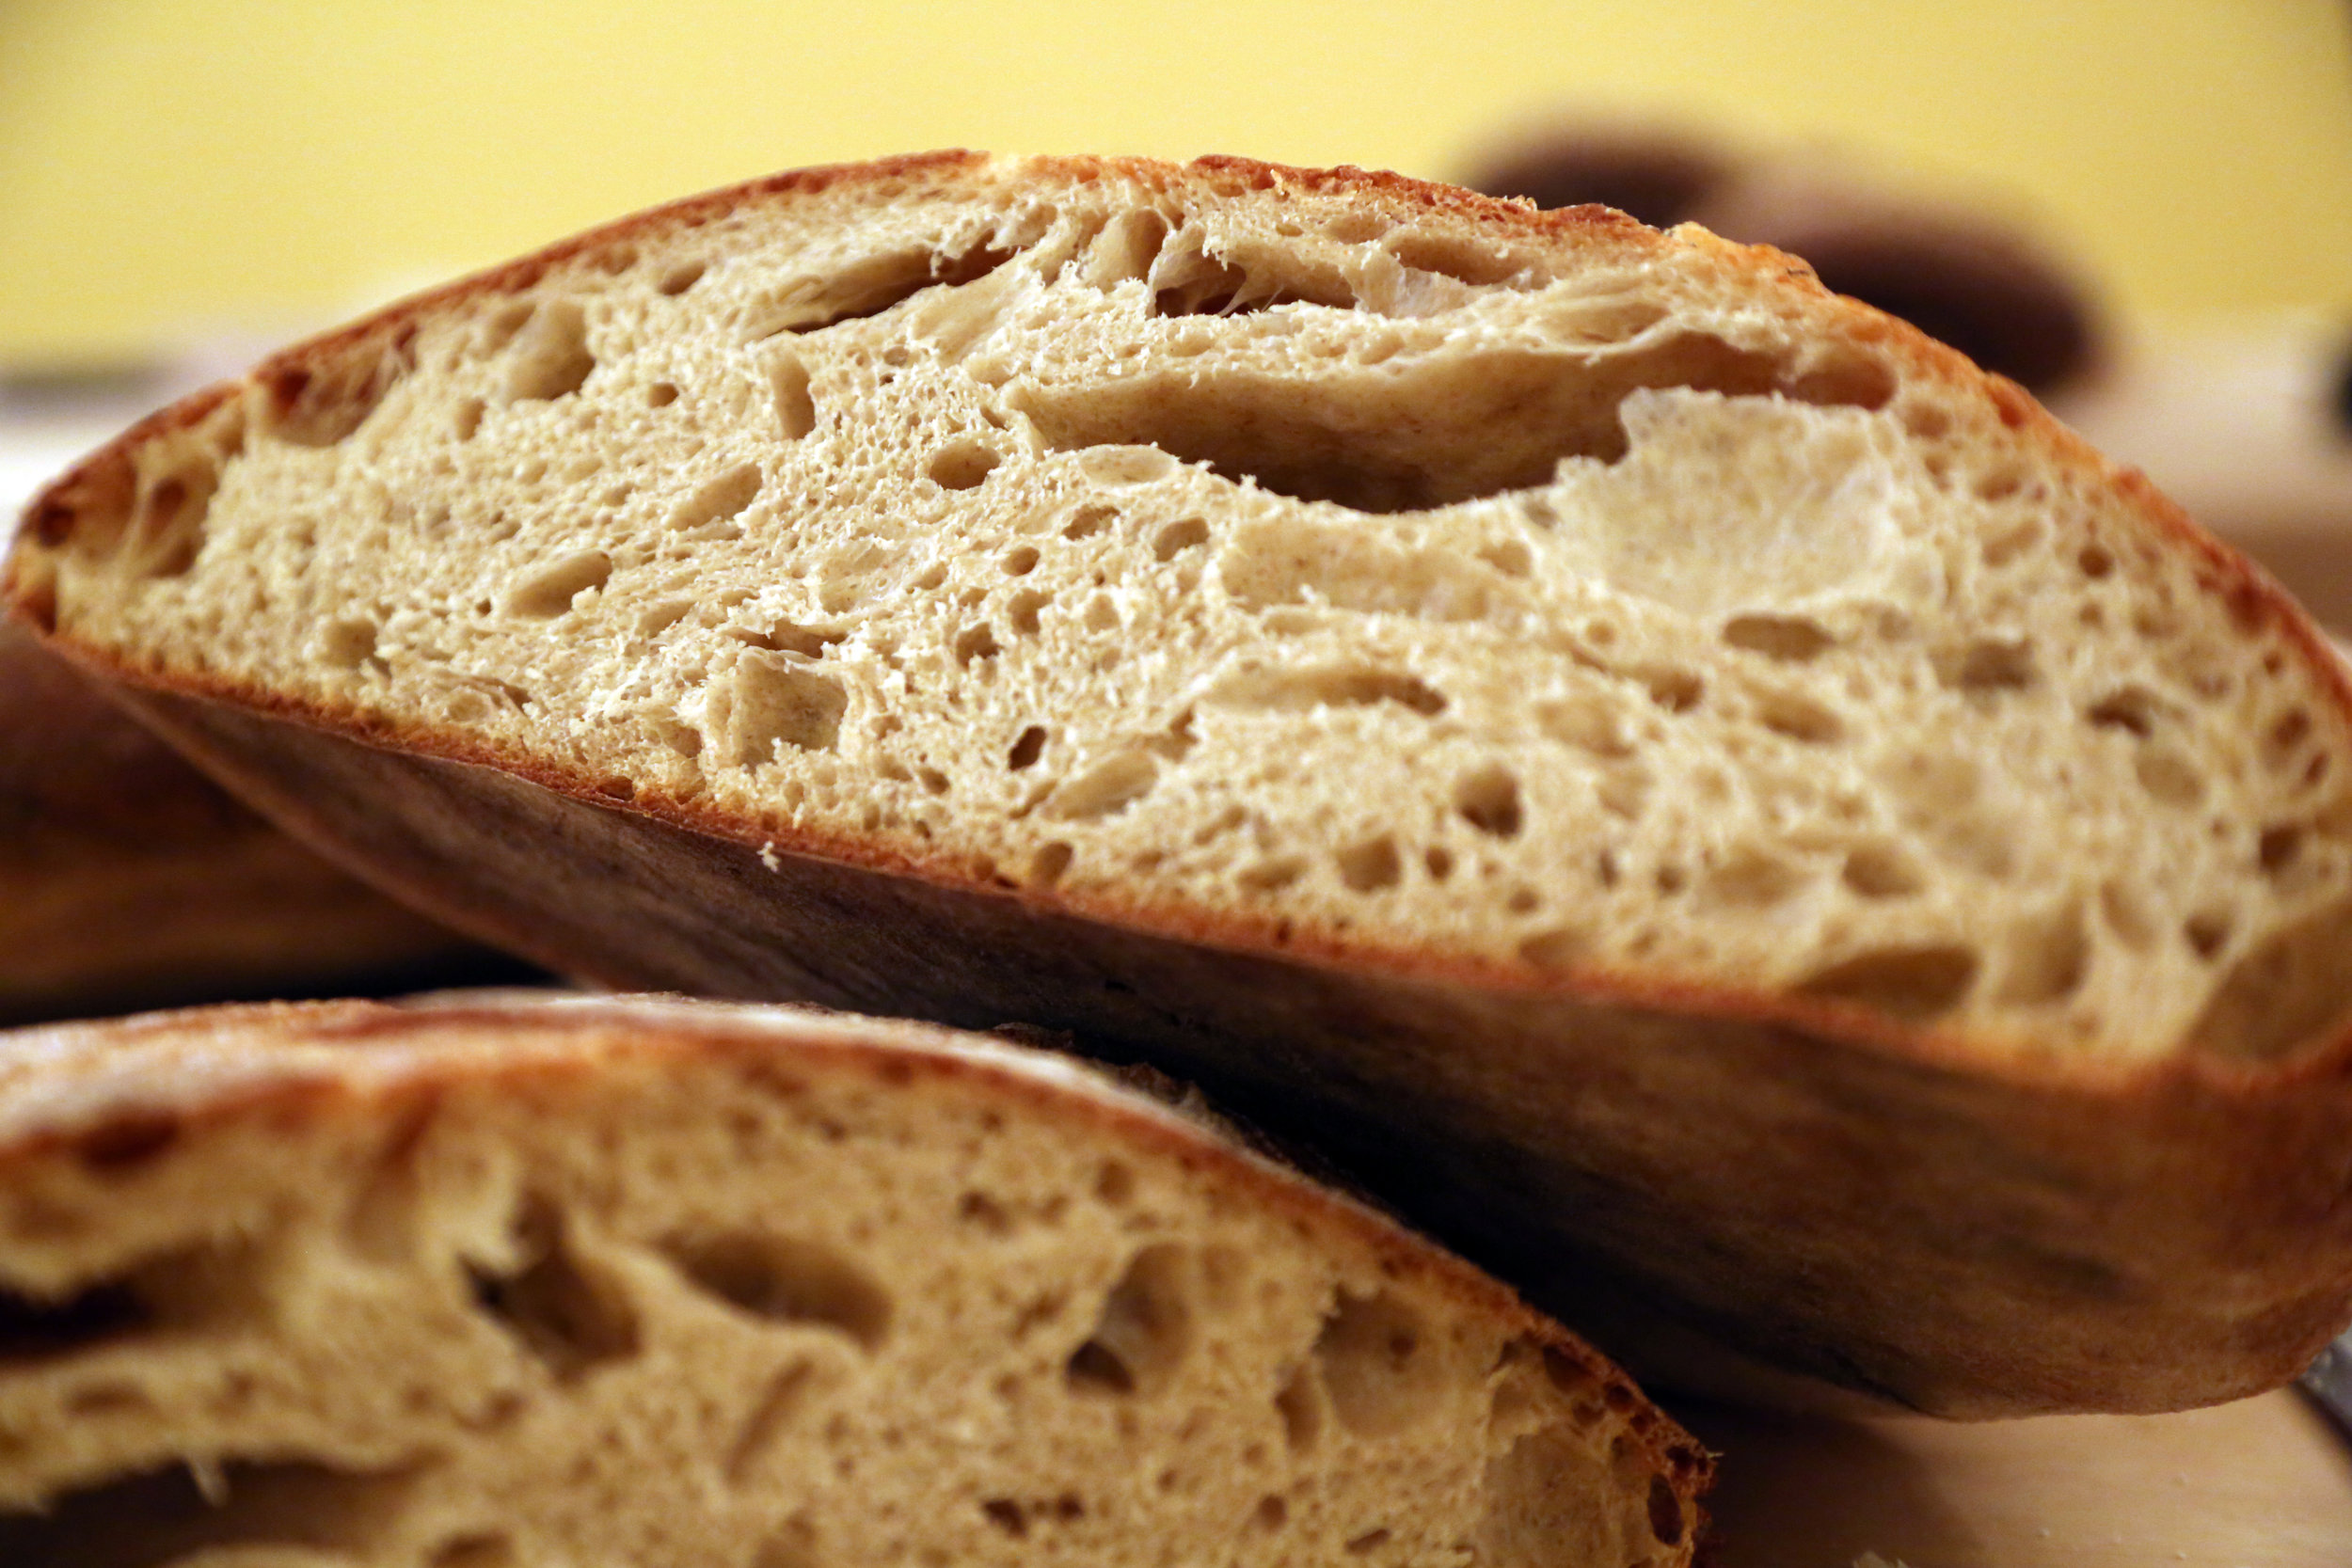 Fermented Bread - Long fermented sourdough breads are a complete different food than the commercialized